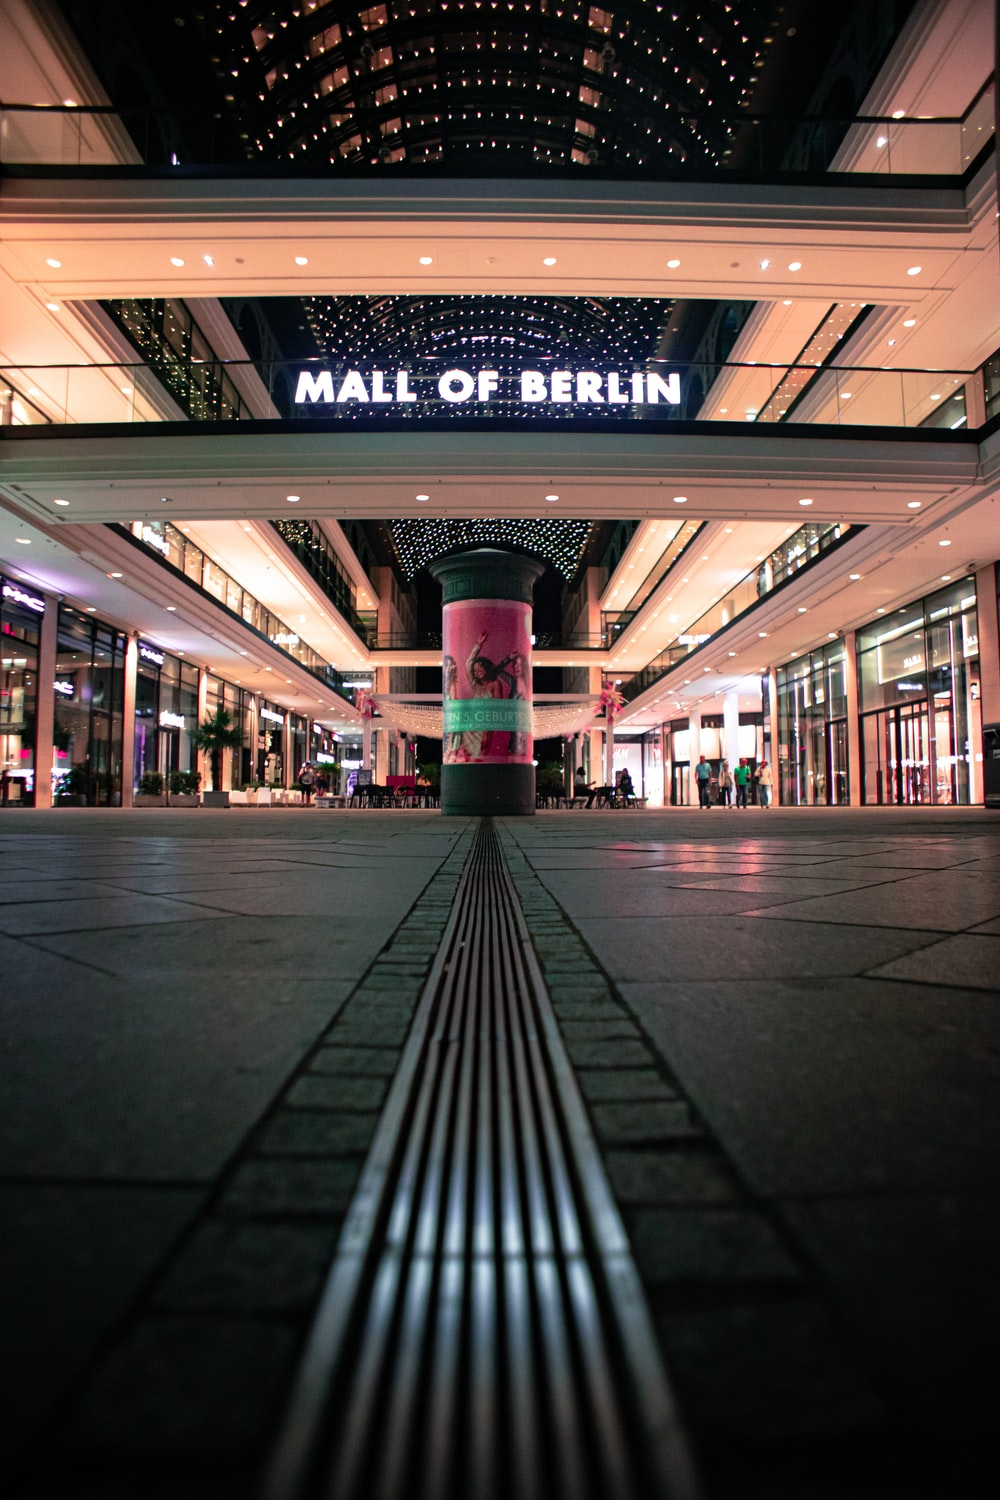 Mall of Berlin at night